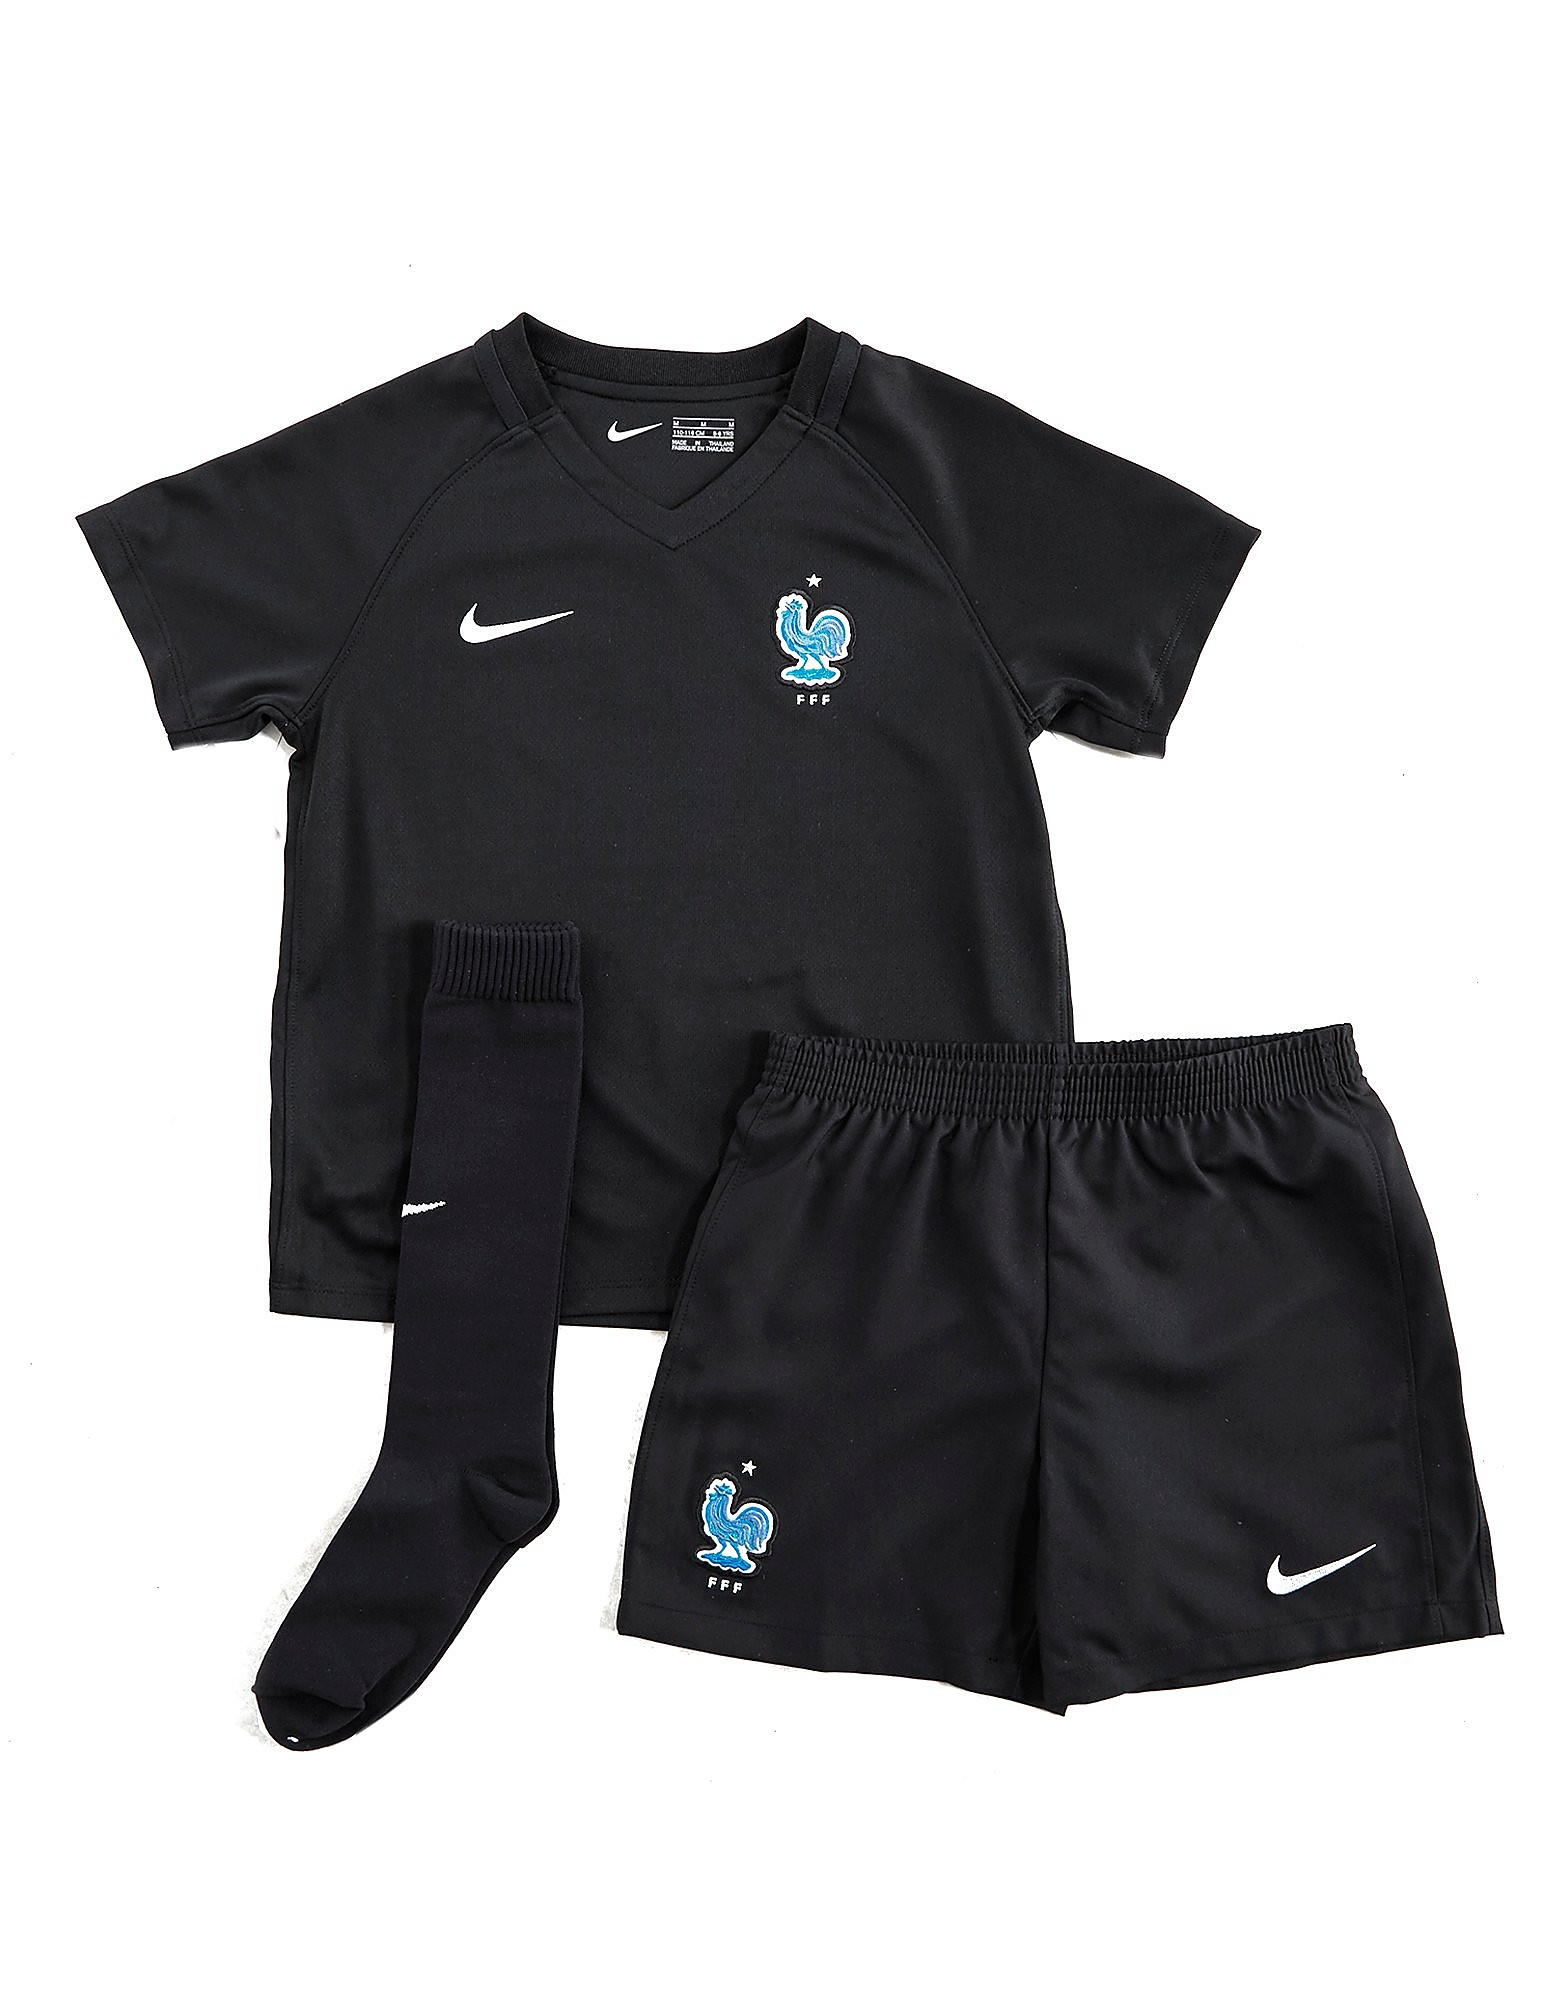 Nike FFF Stadium Children's Shirt